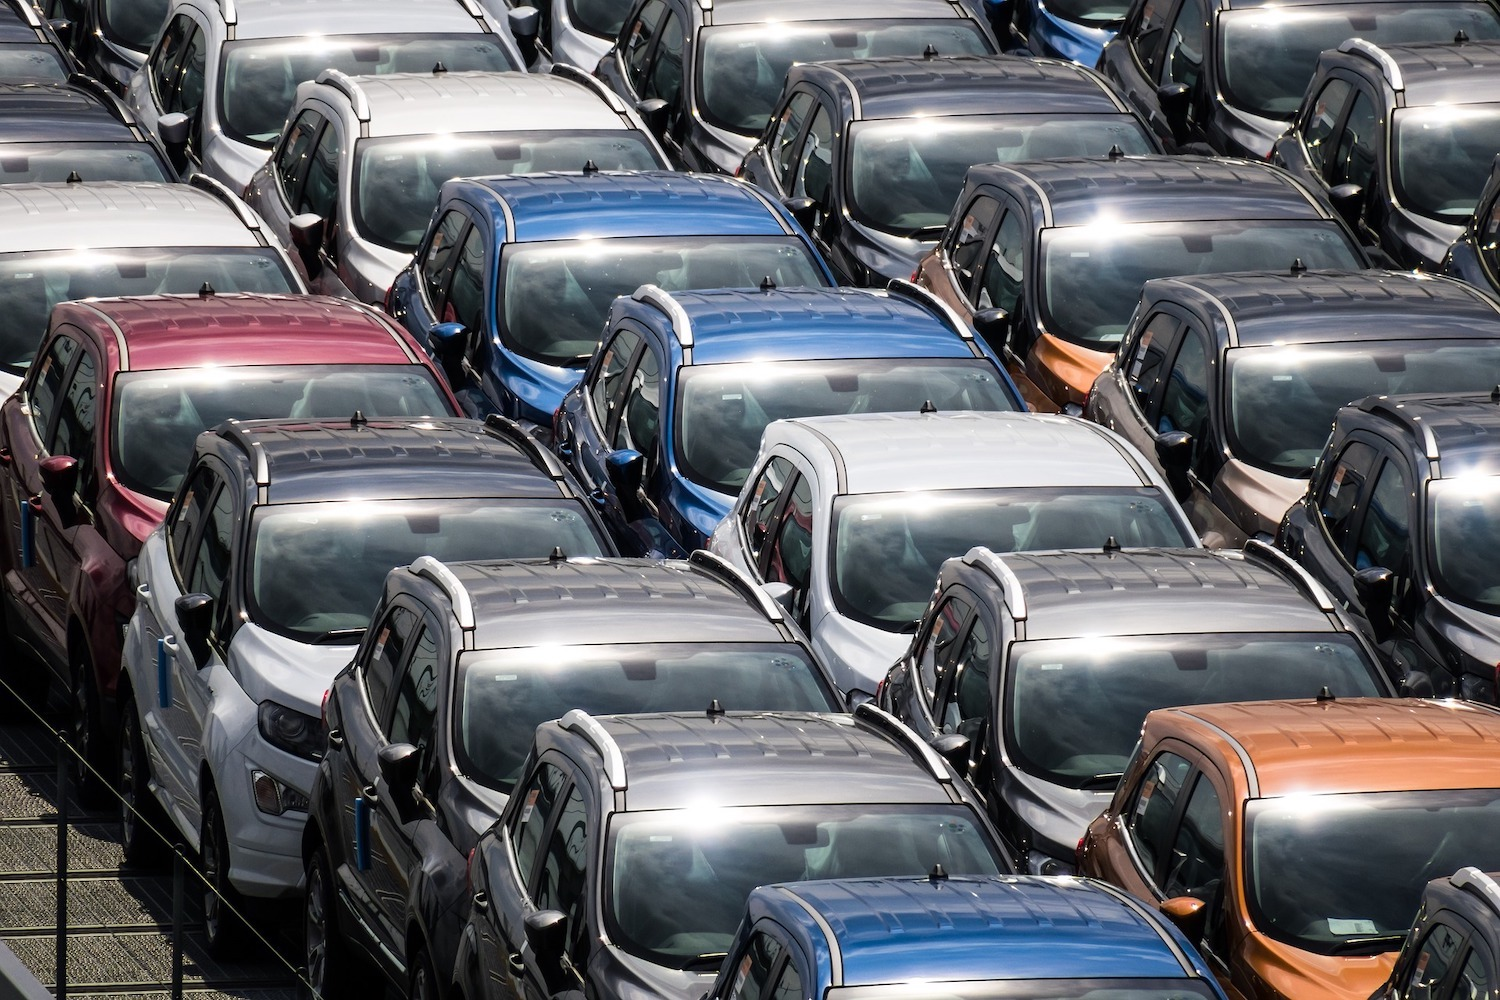 Car News | Final call to reduce VRT ahead of Budget 2020 | CompleteCar.ie